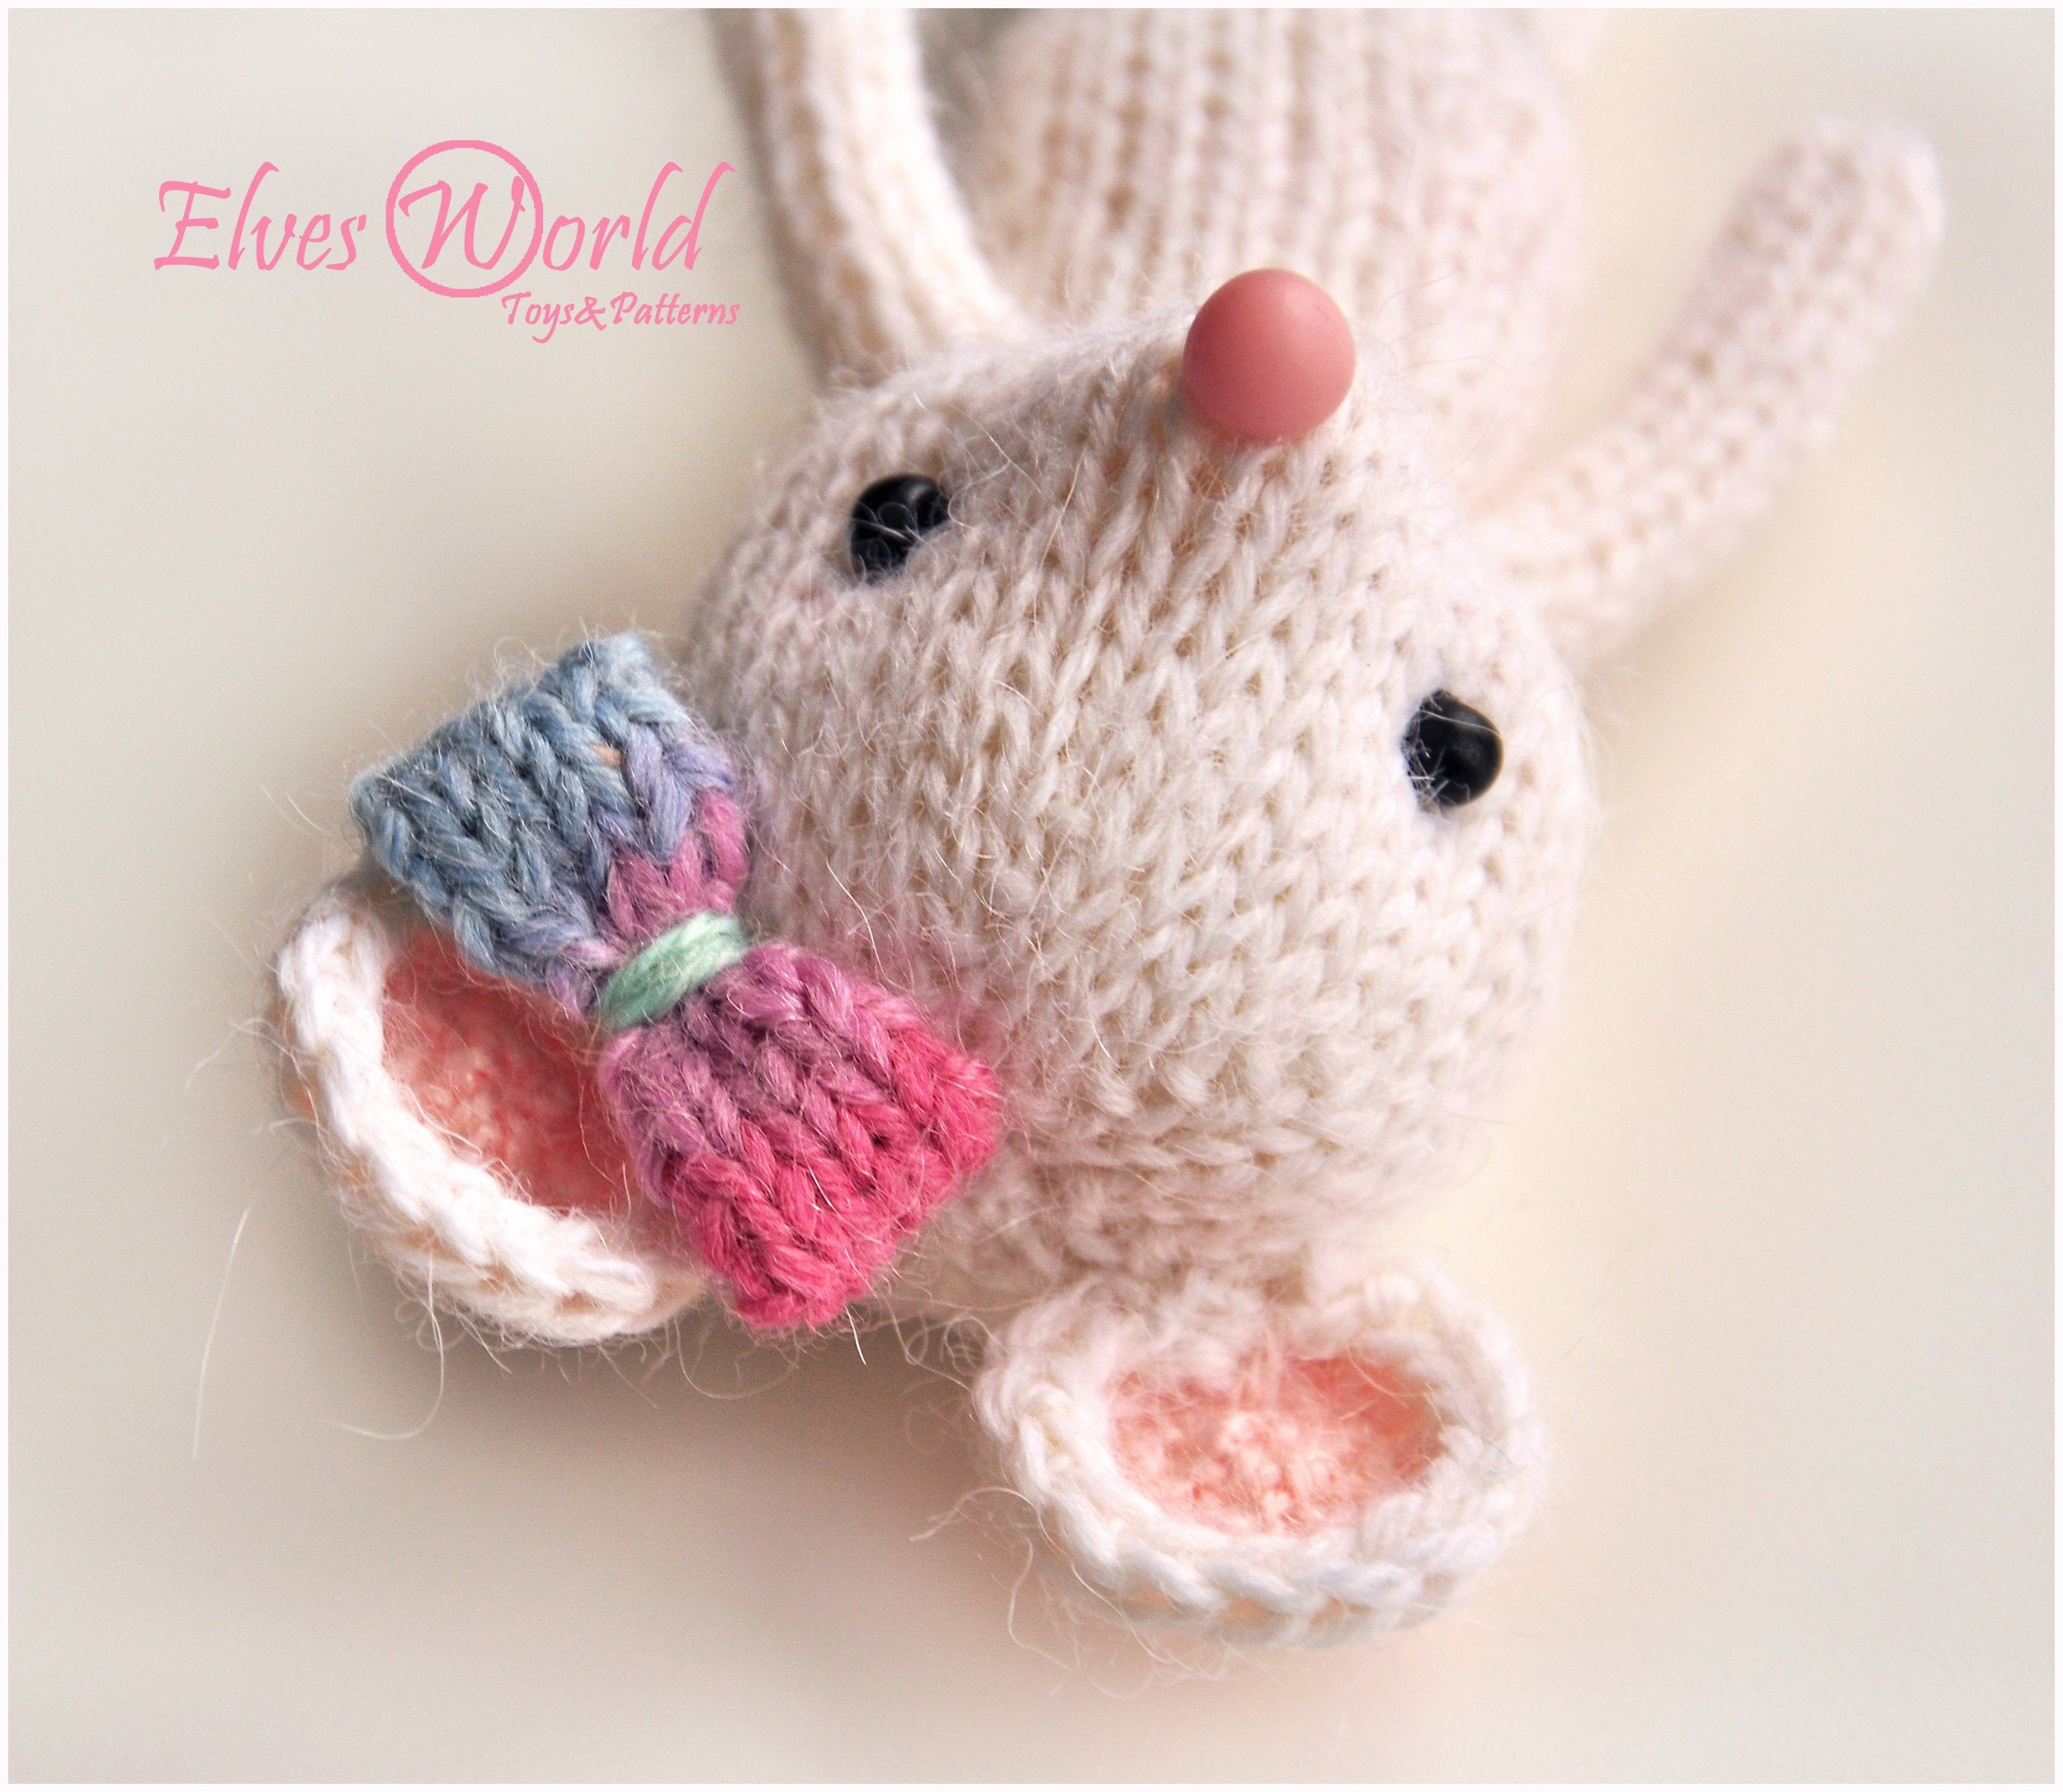 Knitting Patterns For Baby Toys Knitting Patterns Toy Mouse Pdf Knitted Animal Pattern Stuffed Toy Making Diy Toy Ba Mouse Valentine Amigurumi Pattern Patterns Ba Toy